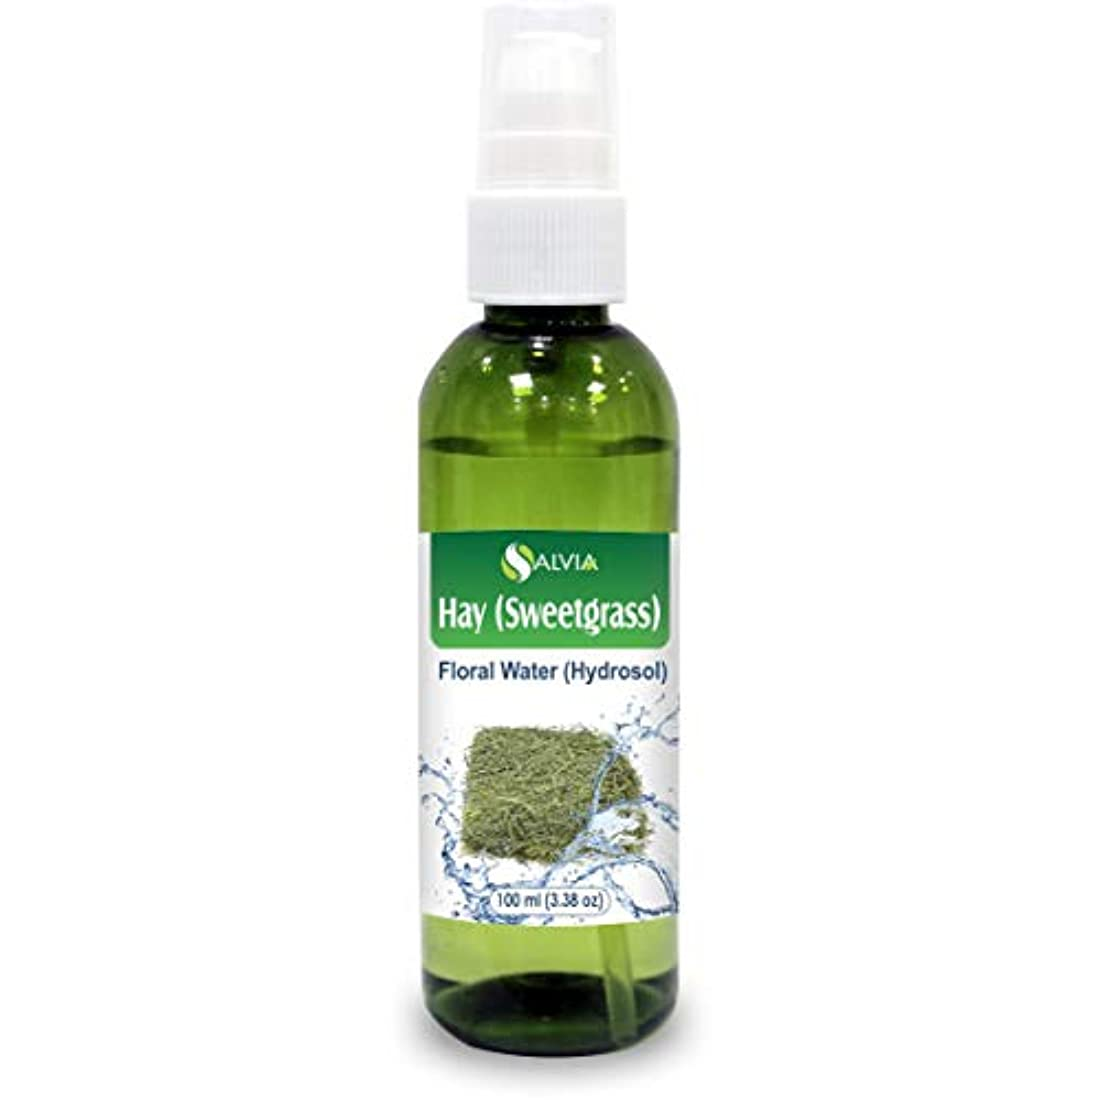 ジャンプするマーカープロポーショナルHay (Sweetgrass) Floral Water 100ml (Hydrosol) 100% Pure And Natural